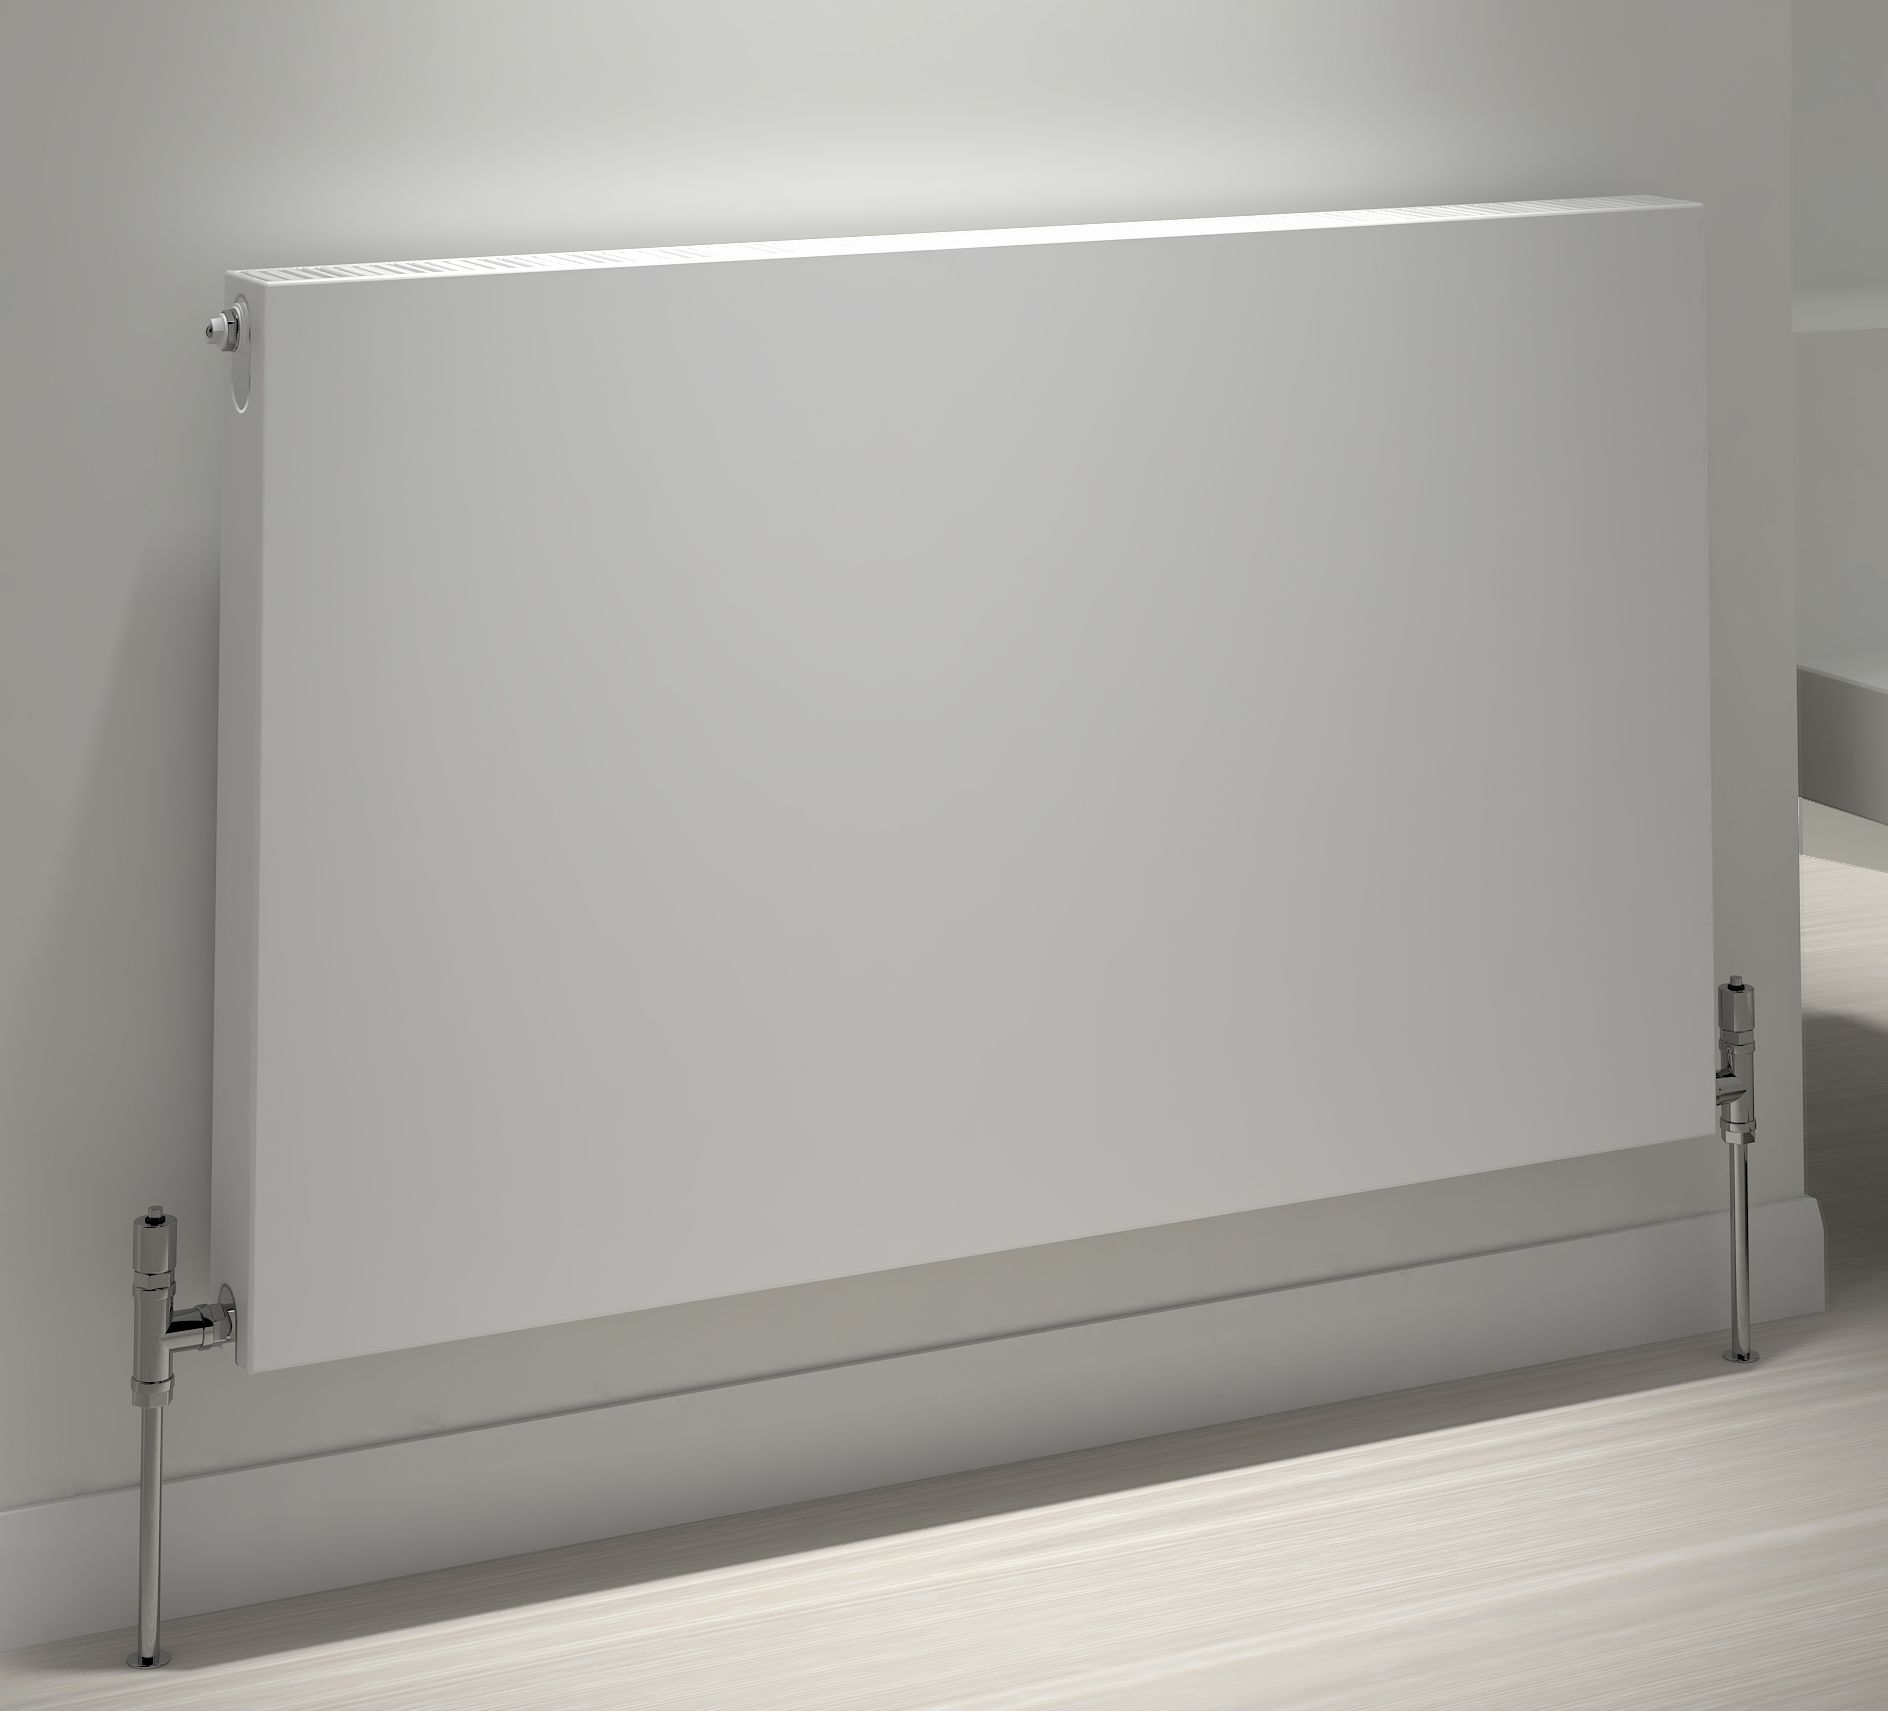 Design Convector Radiator.Kudox Flat Surface Radiator Type 21 Double Panel Single Convector 600mm X 1600mm